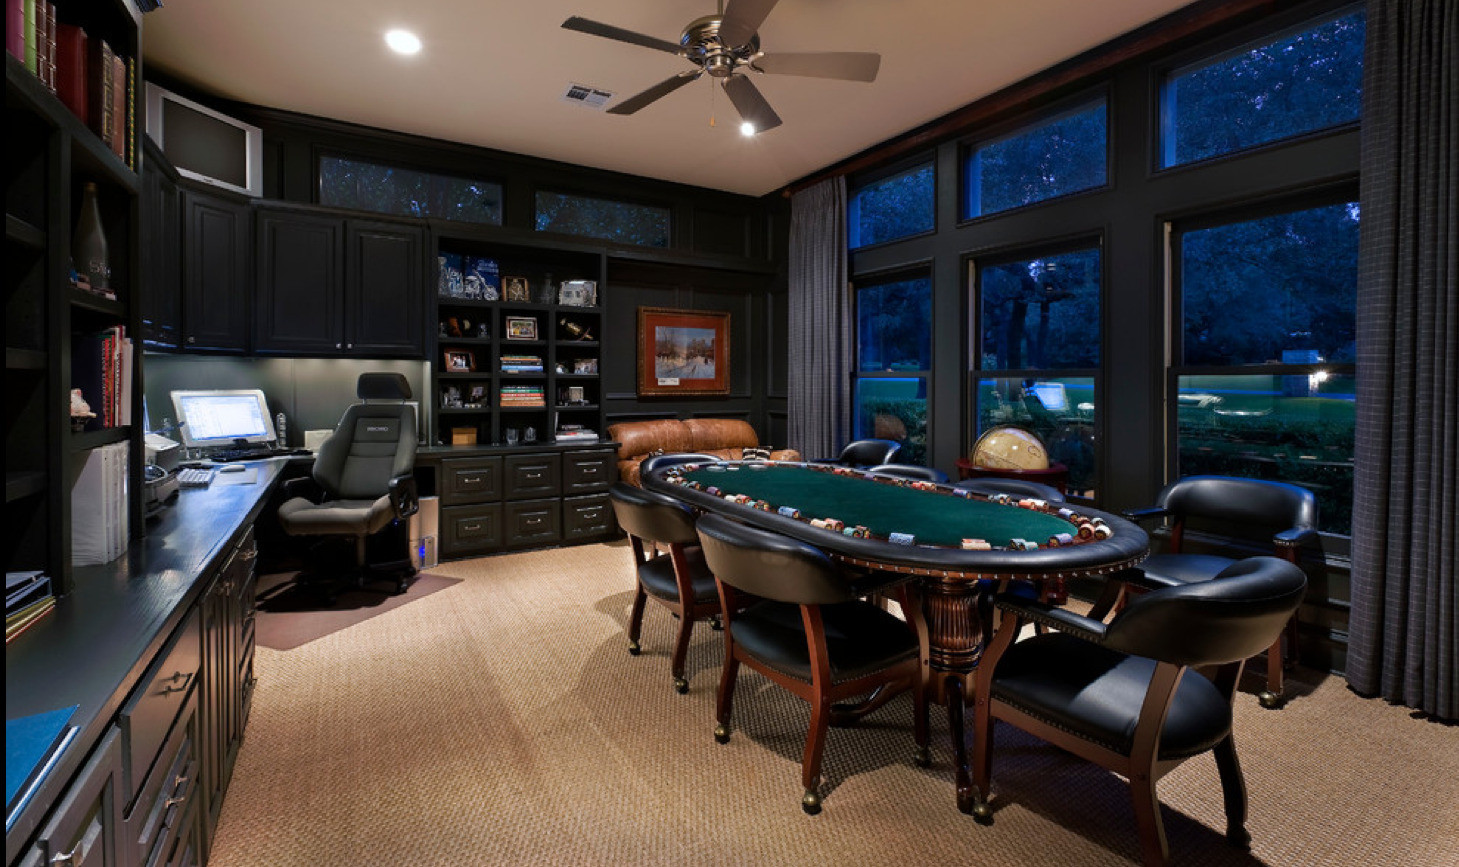 Best ideas about The Game Room . Save or Pin 50 Best Man Cave Ideas and Designs for 2017 Now.